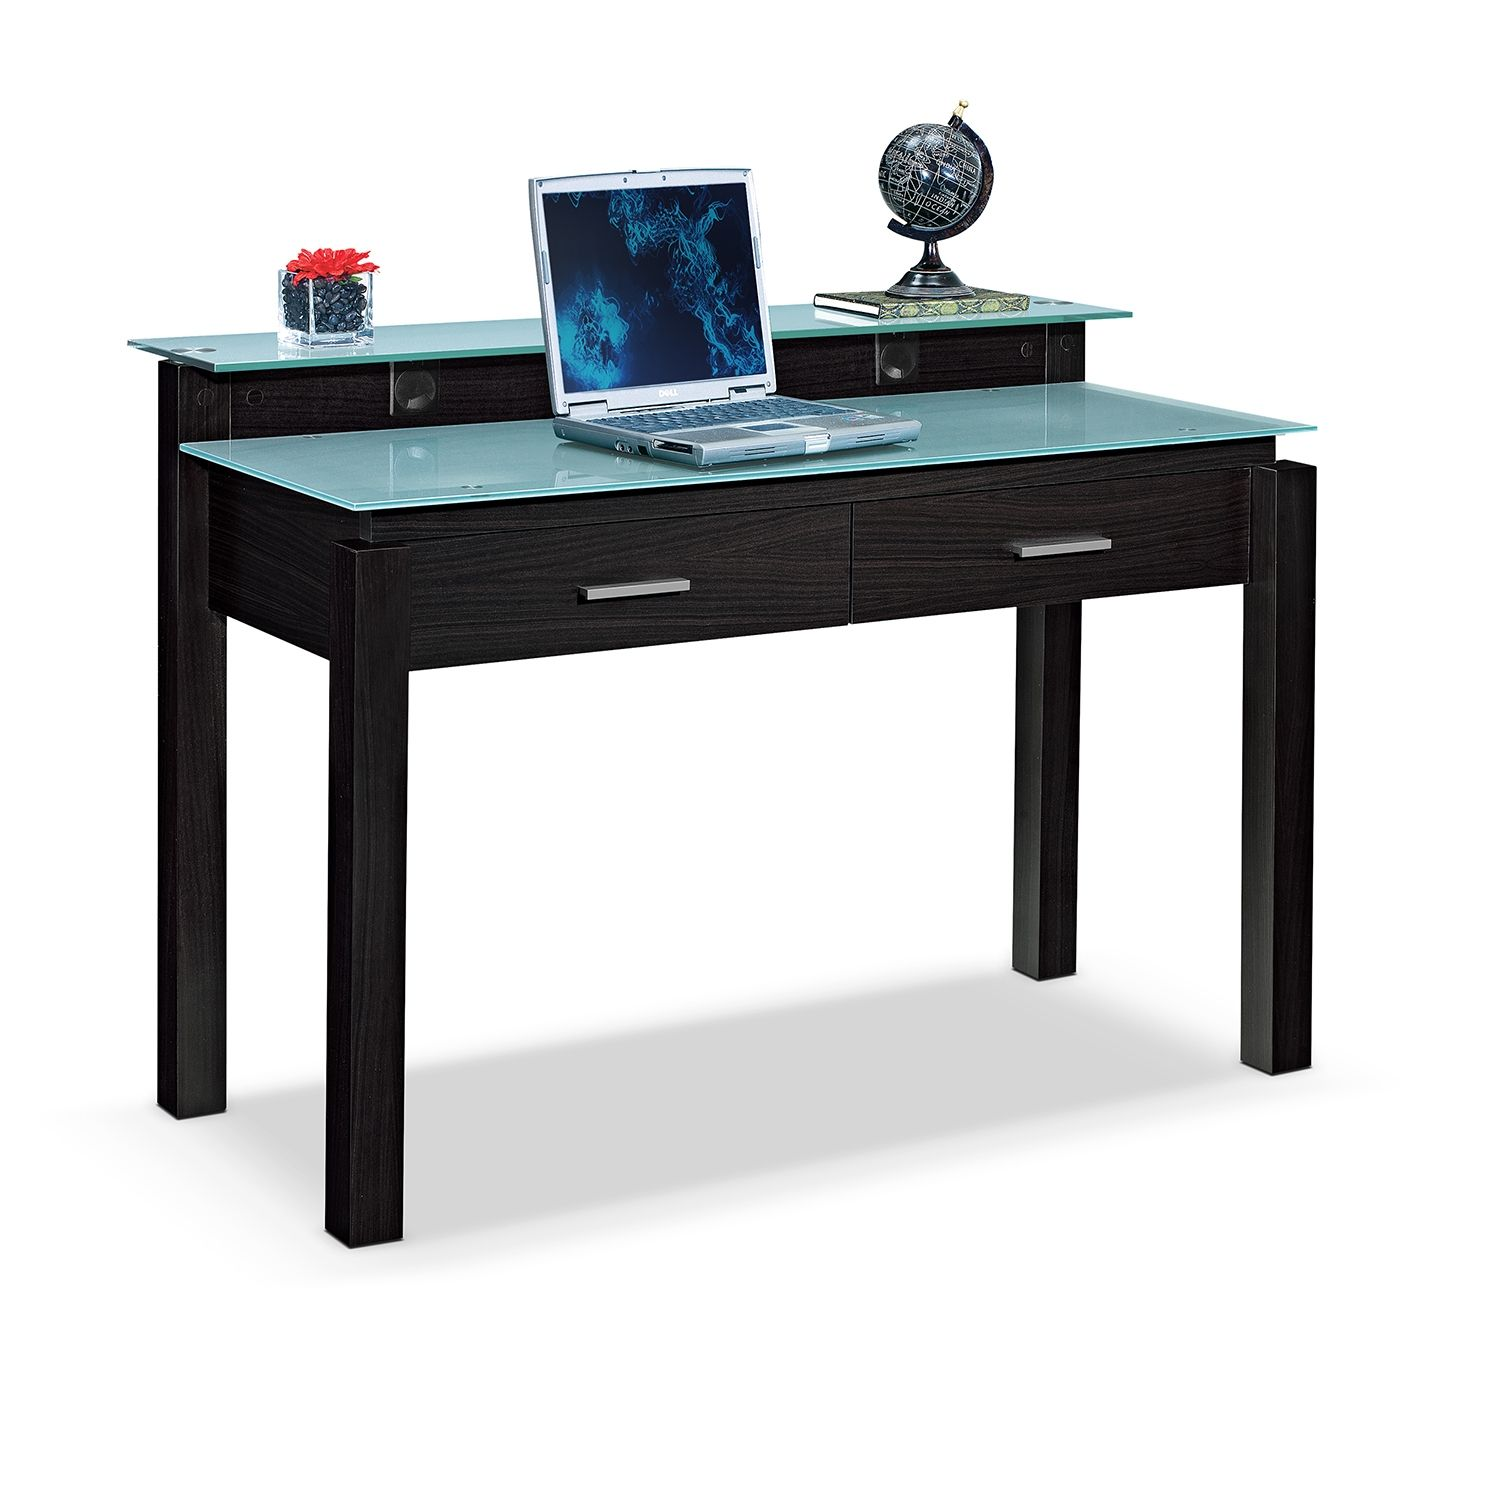 Full Form Our Crescent Desk Is Just The Thing To Complete Your